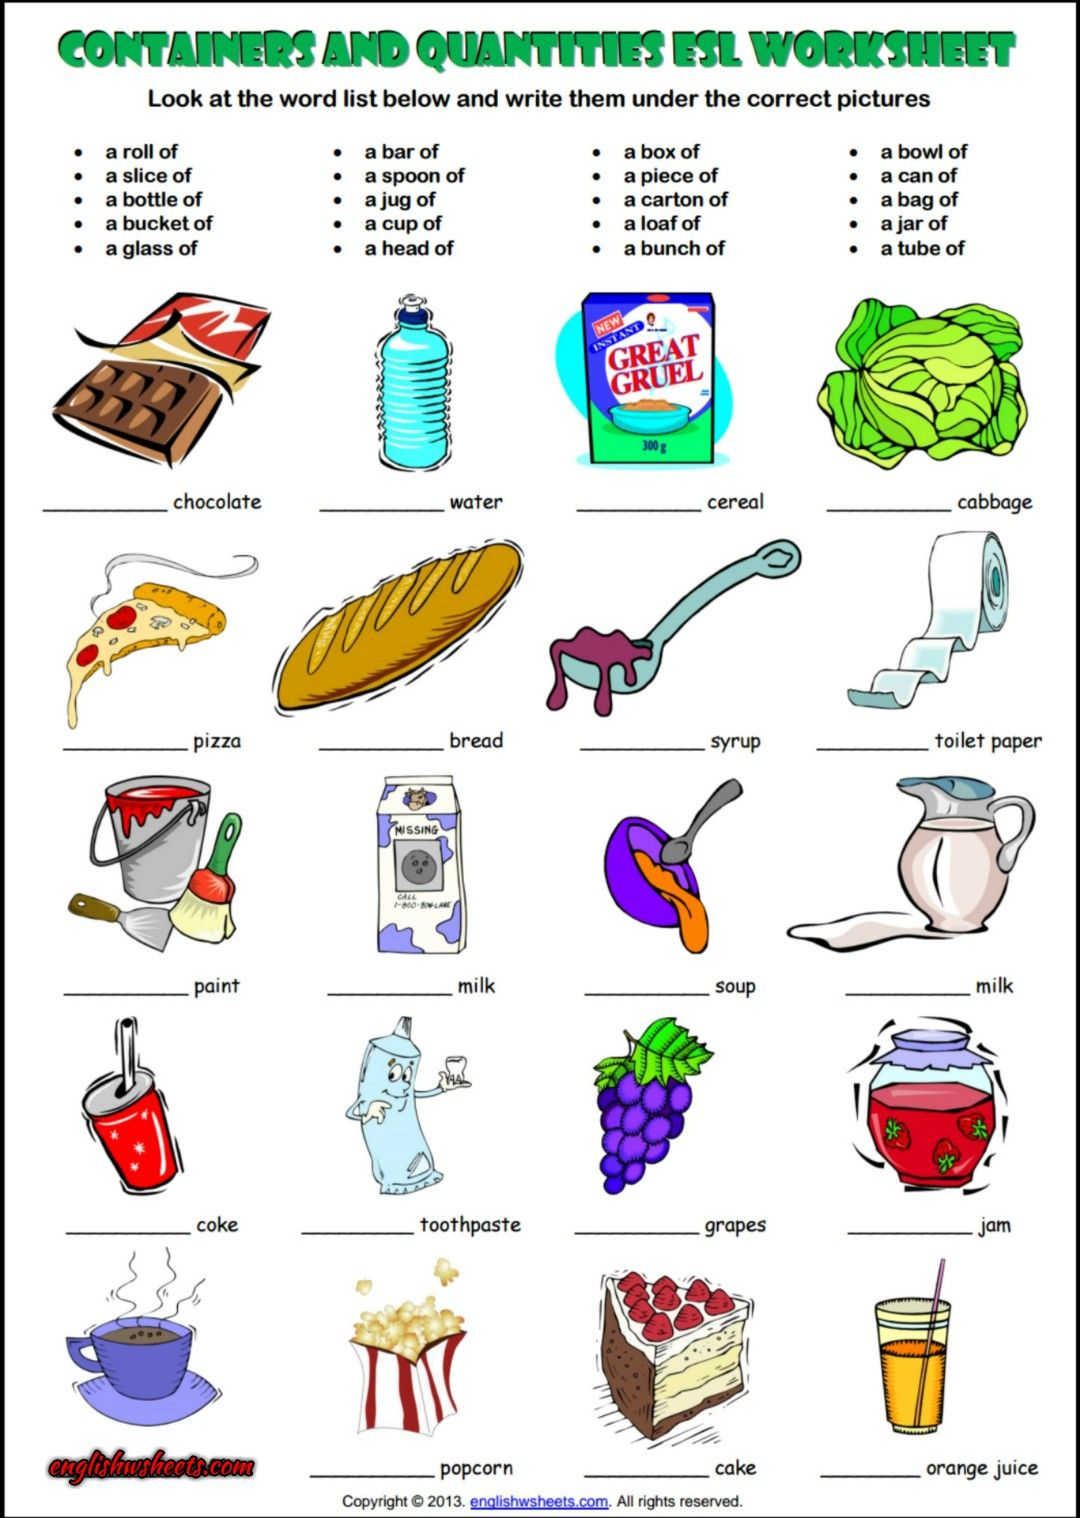 Containers And Quantity Esl Exercises Worksheet Esl Printable Grammar Worksheet And Exercises